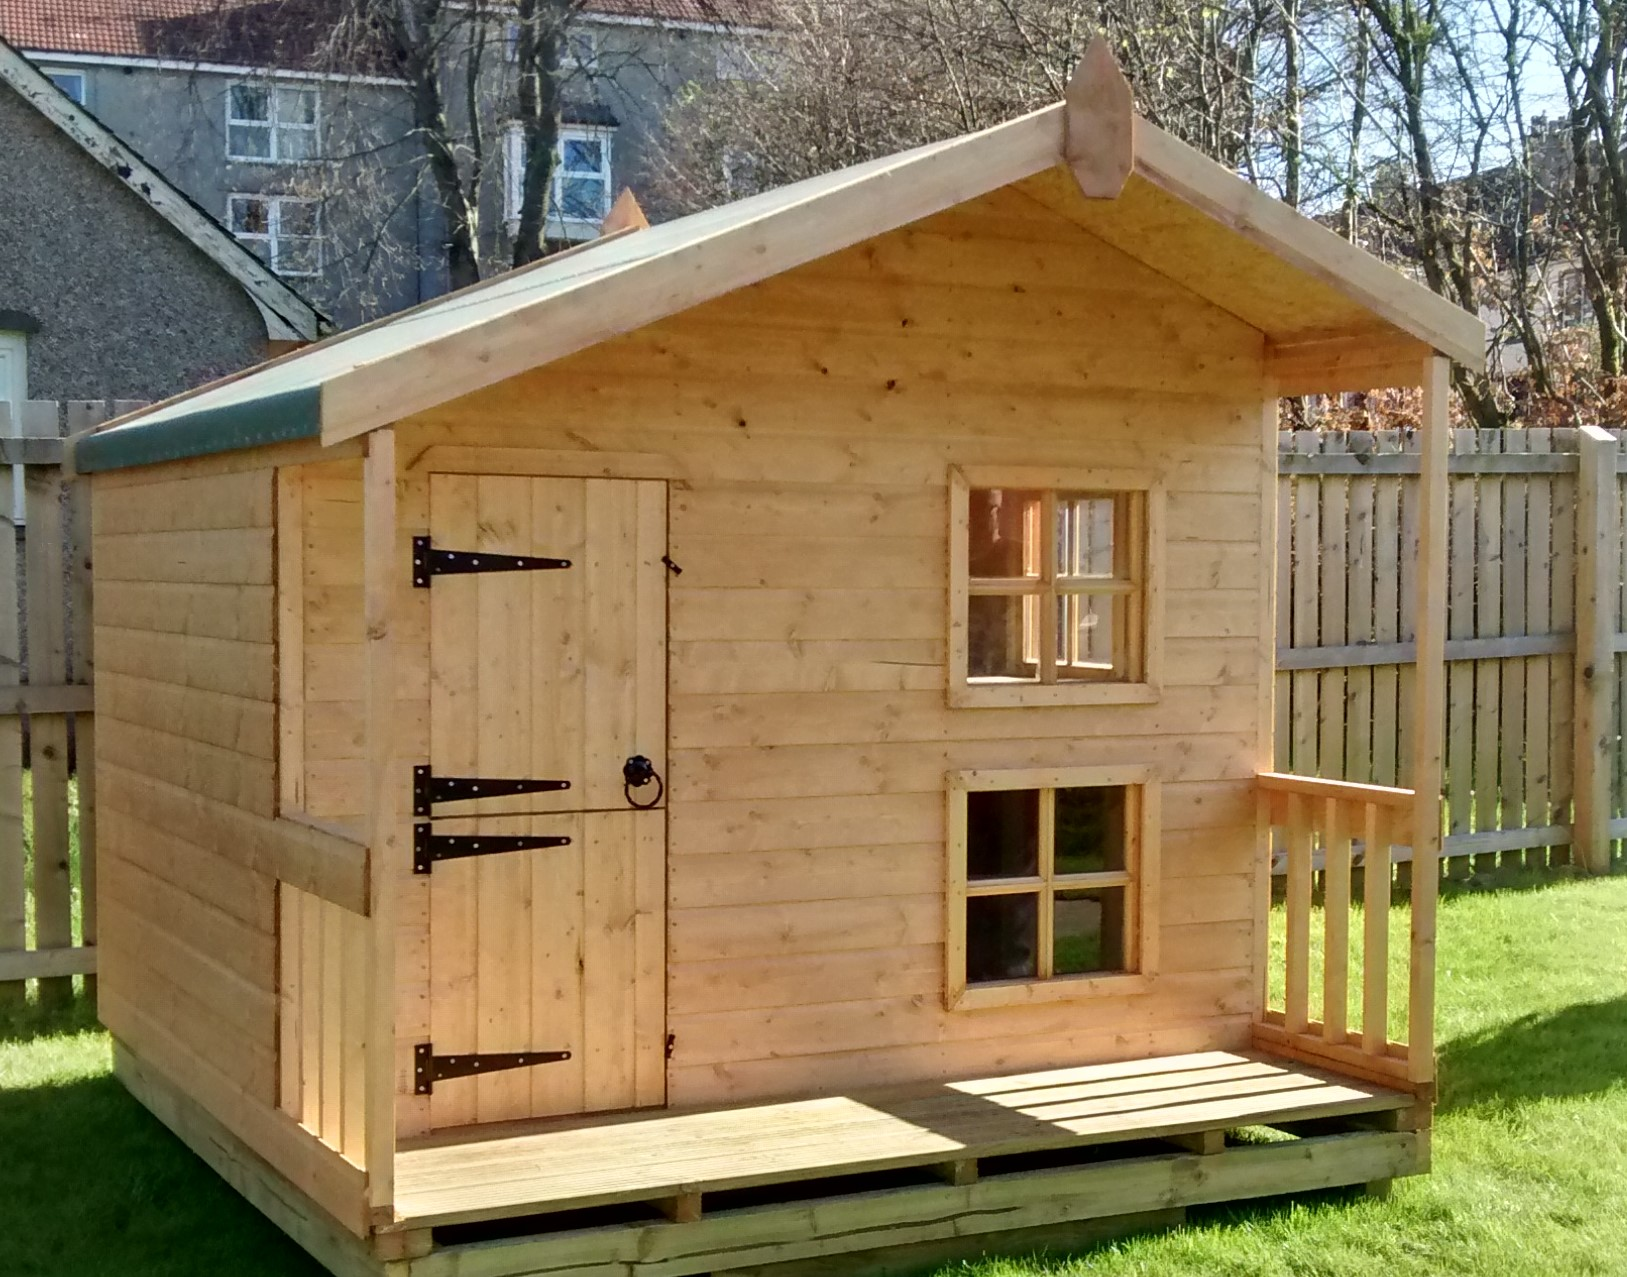 Two Storey Playhouse with Veranda (8' x 8')